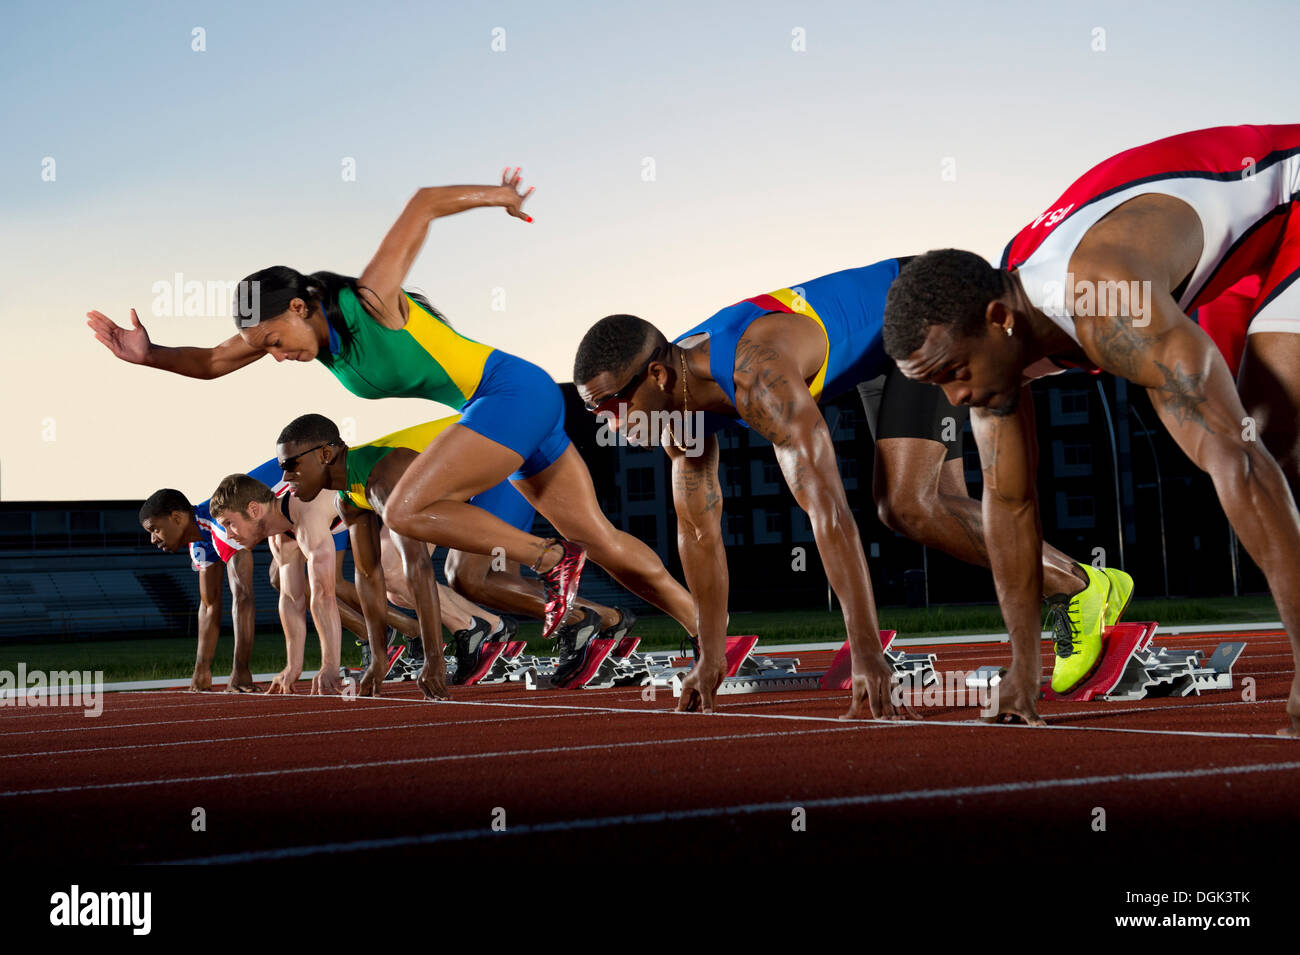 False Start In Race Woman Running Against Men